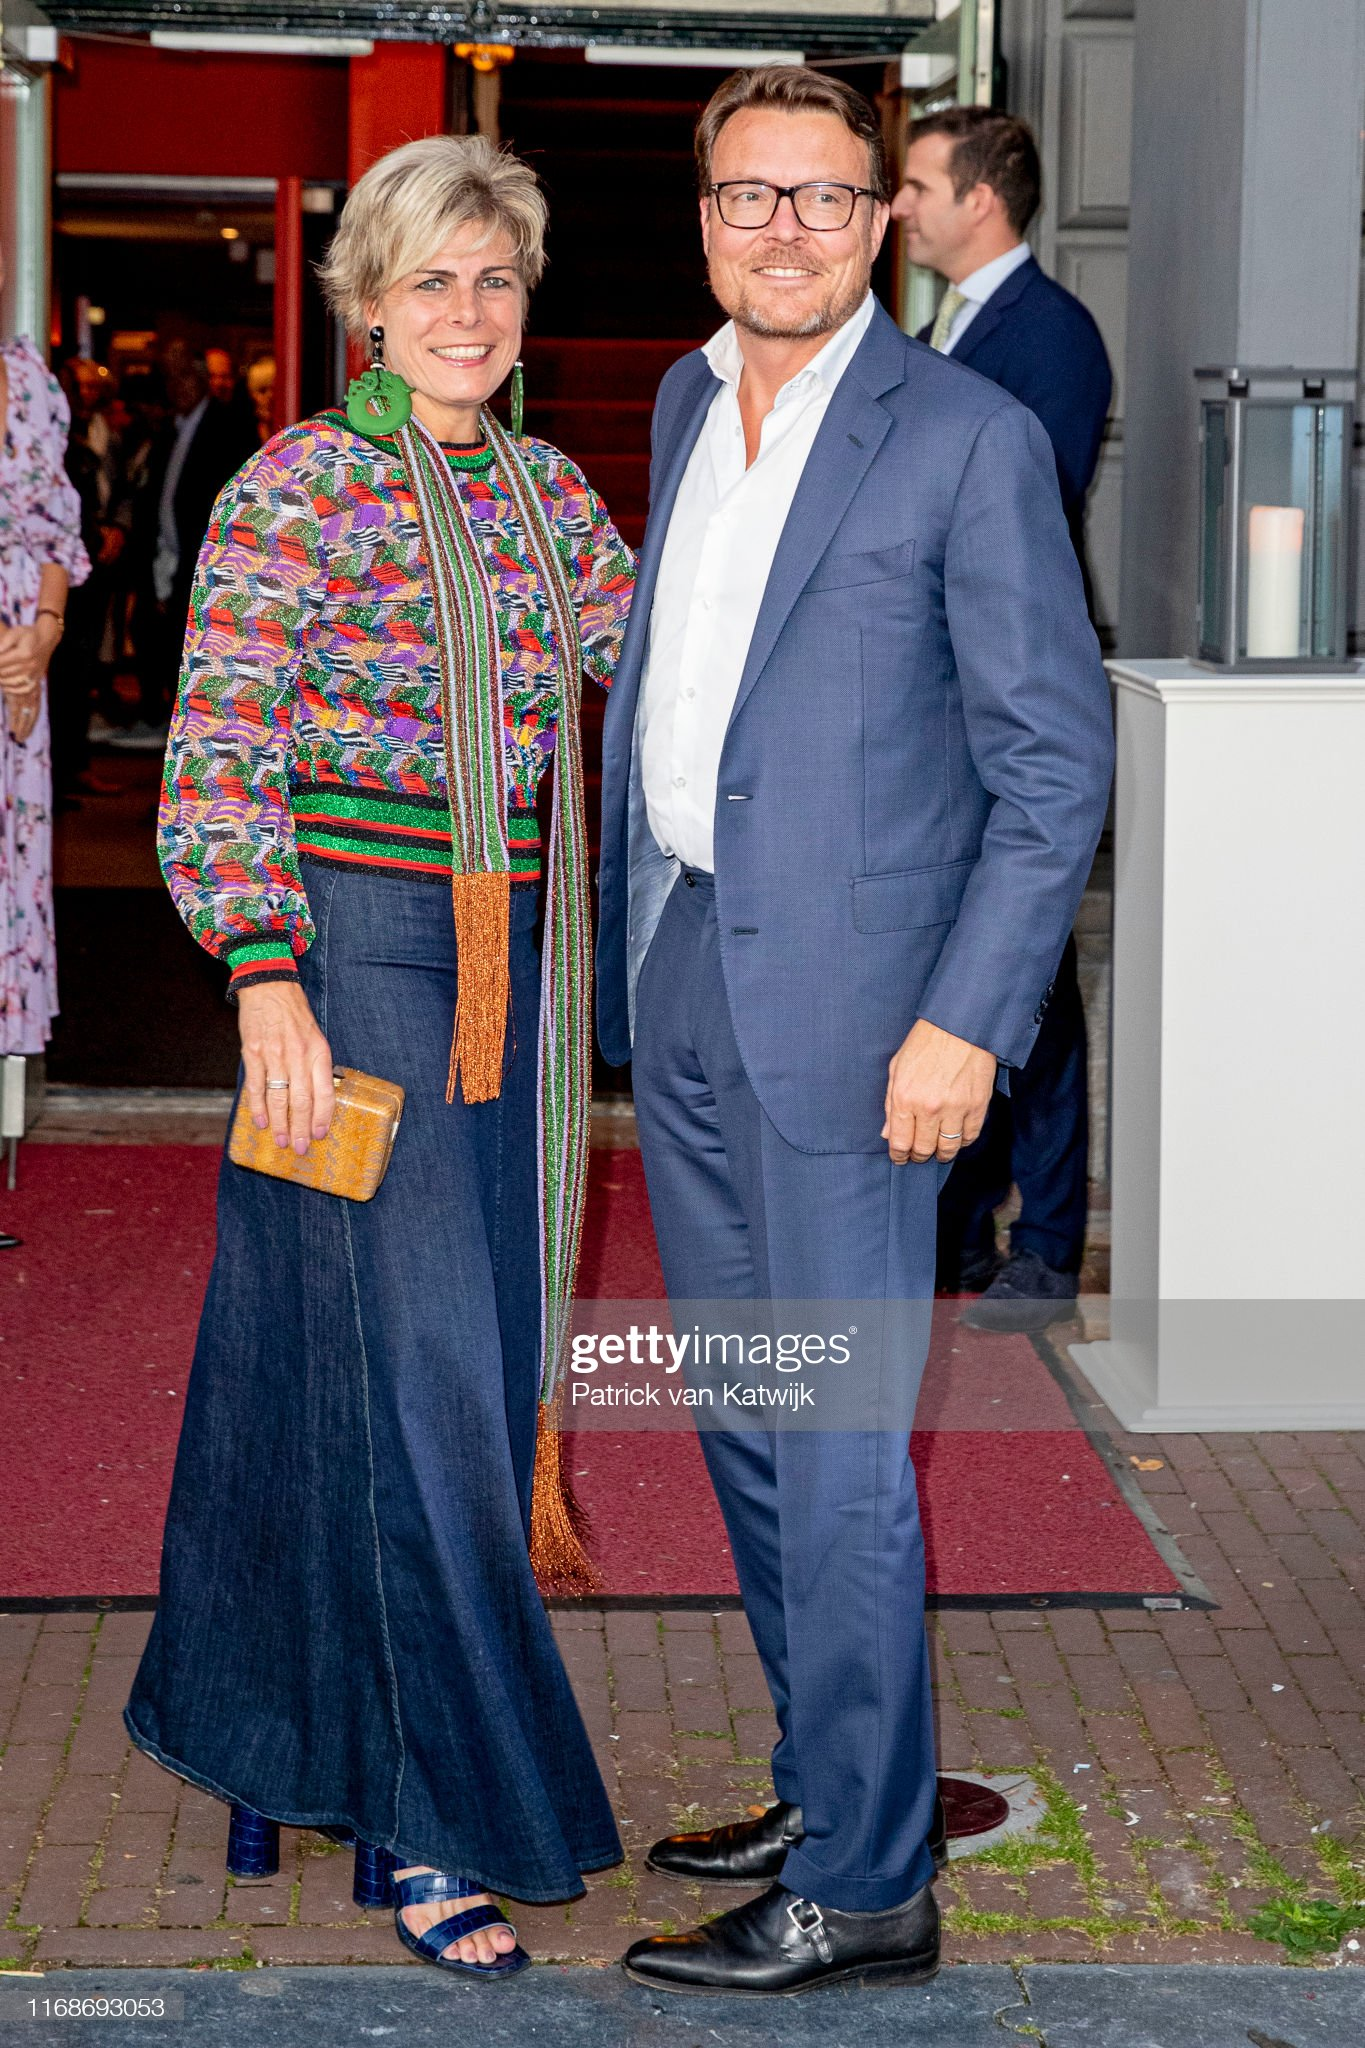 Dutch Royal Family Attends Princess Irene's Birthday : News Photo